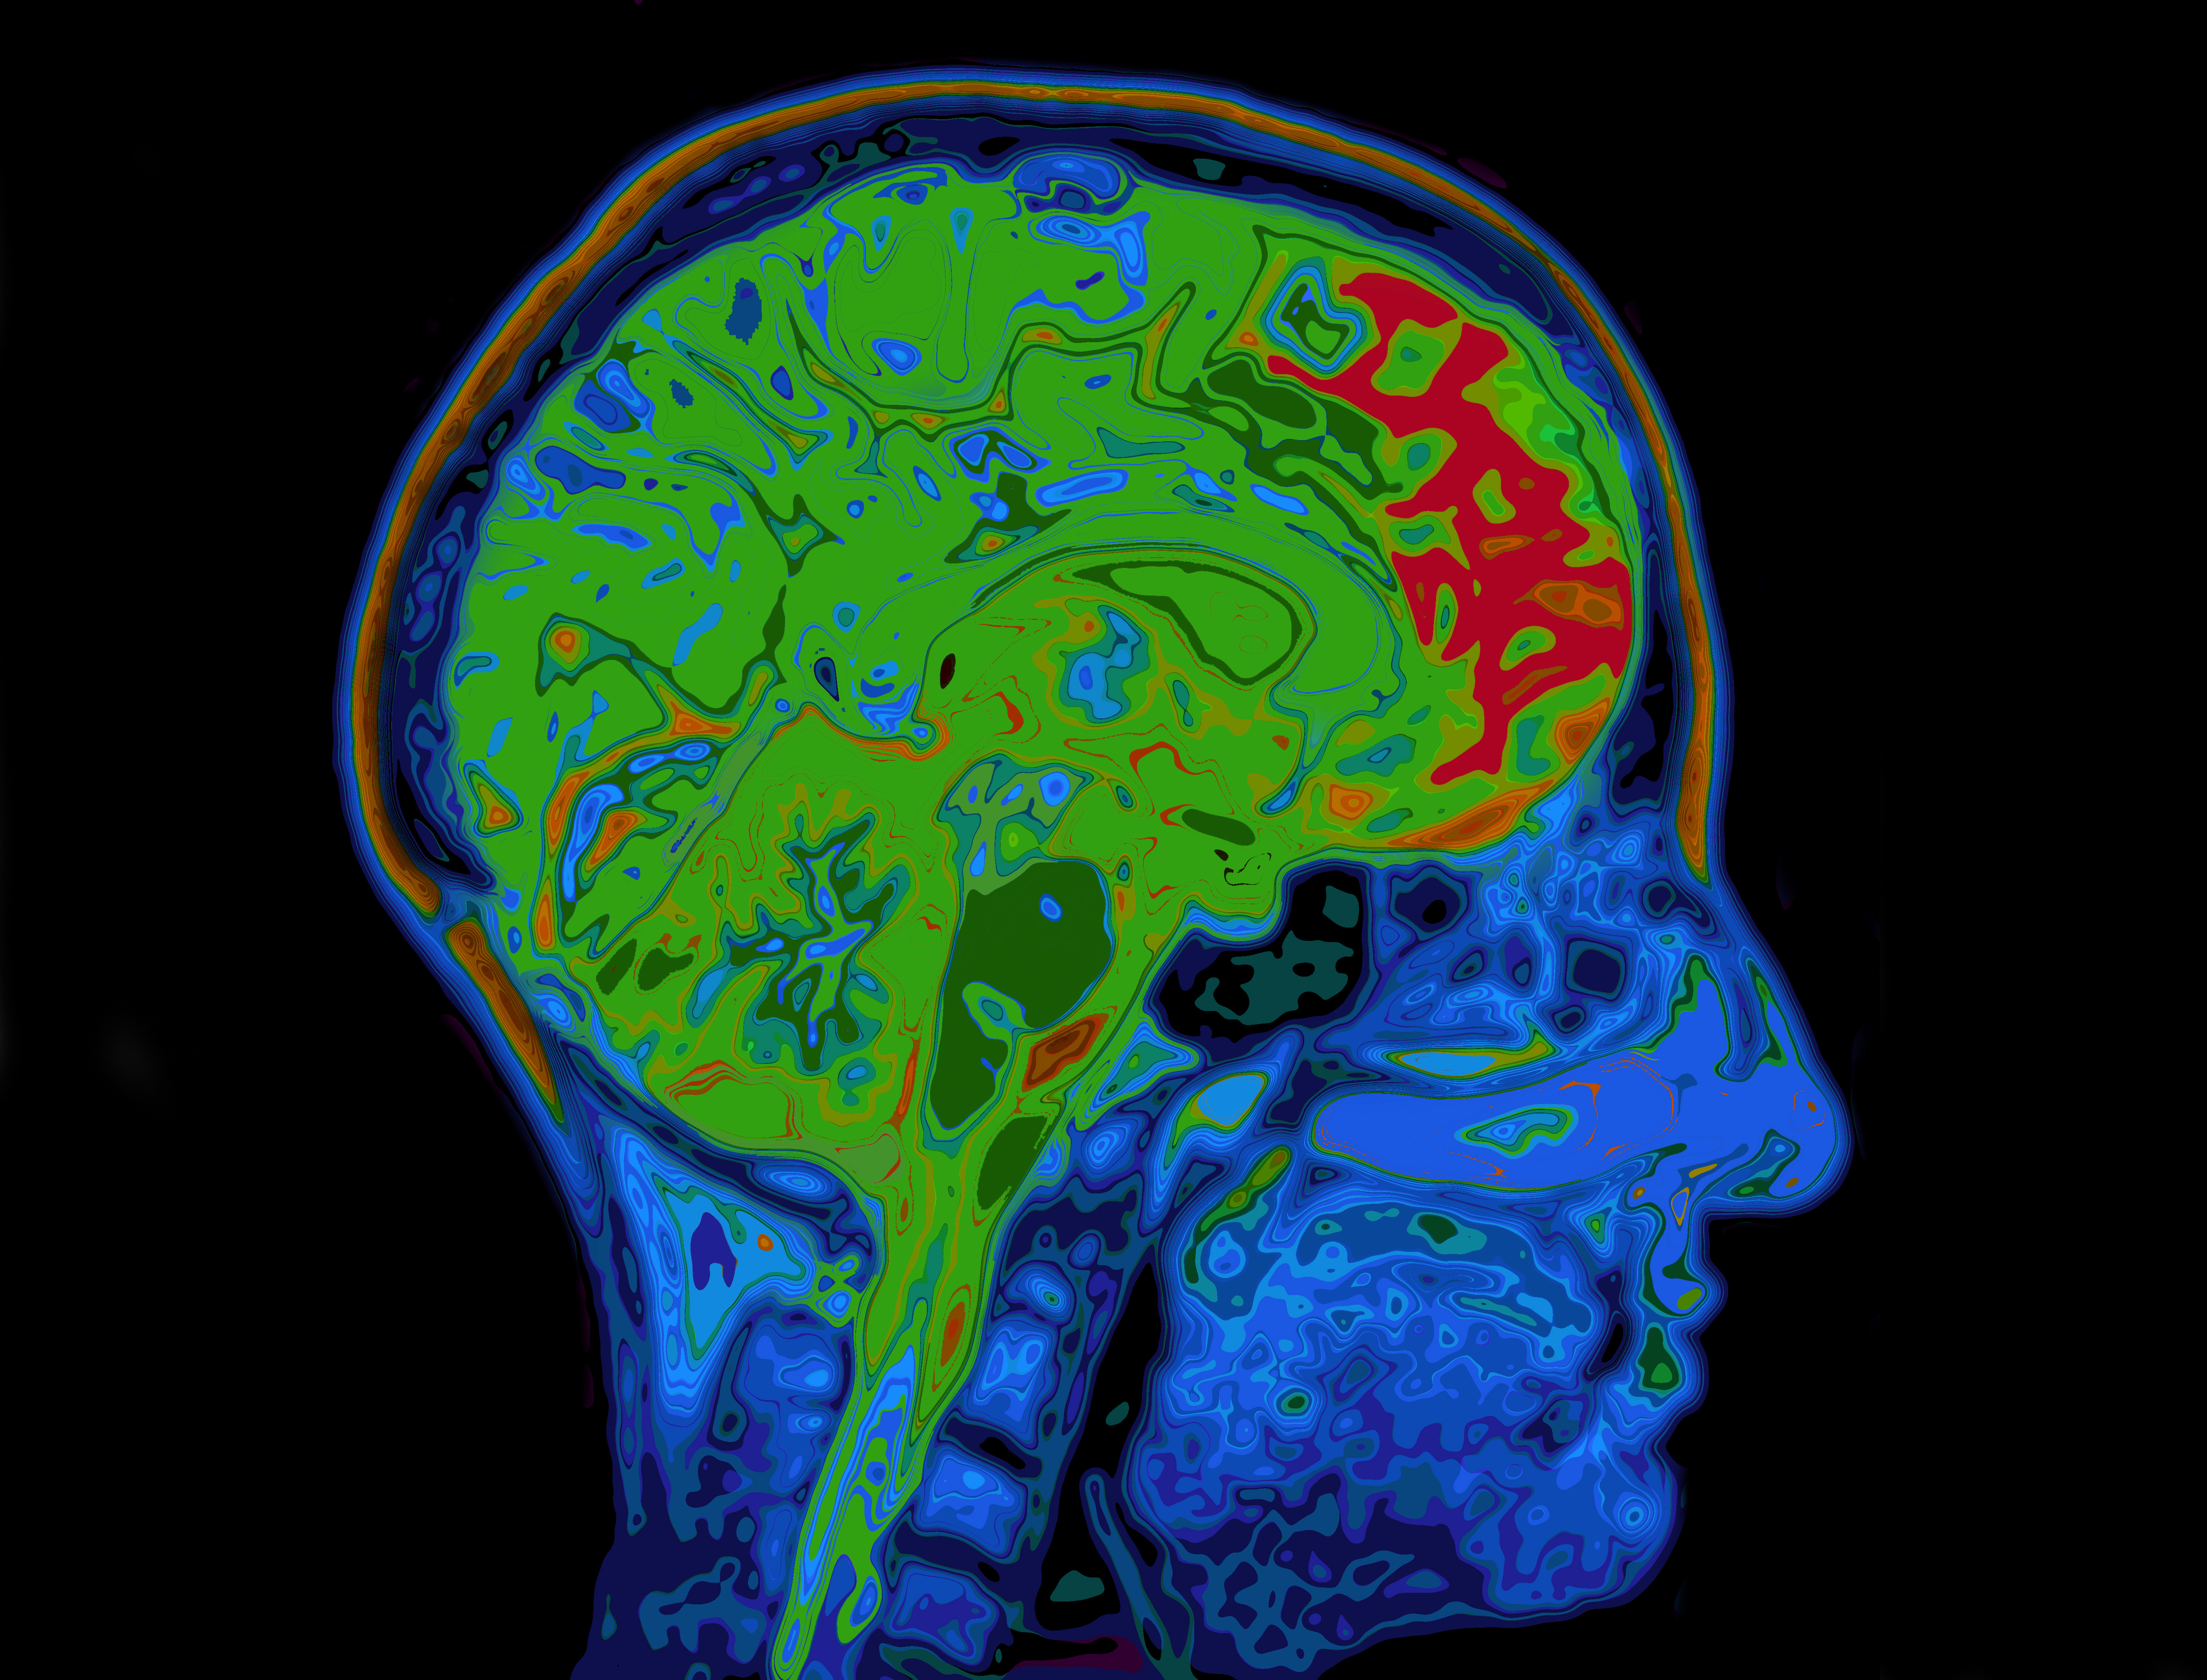 Future MRI Scans And Other Brain Images May Predict Report Card ...